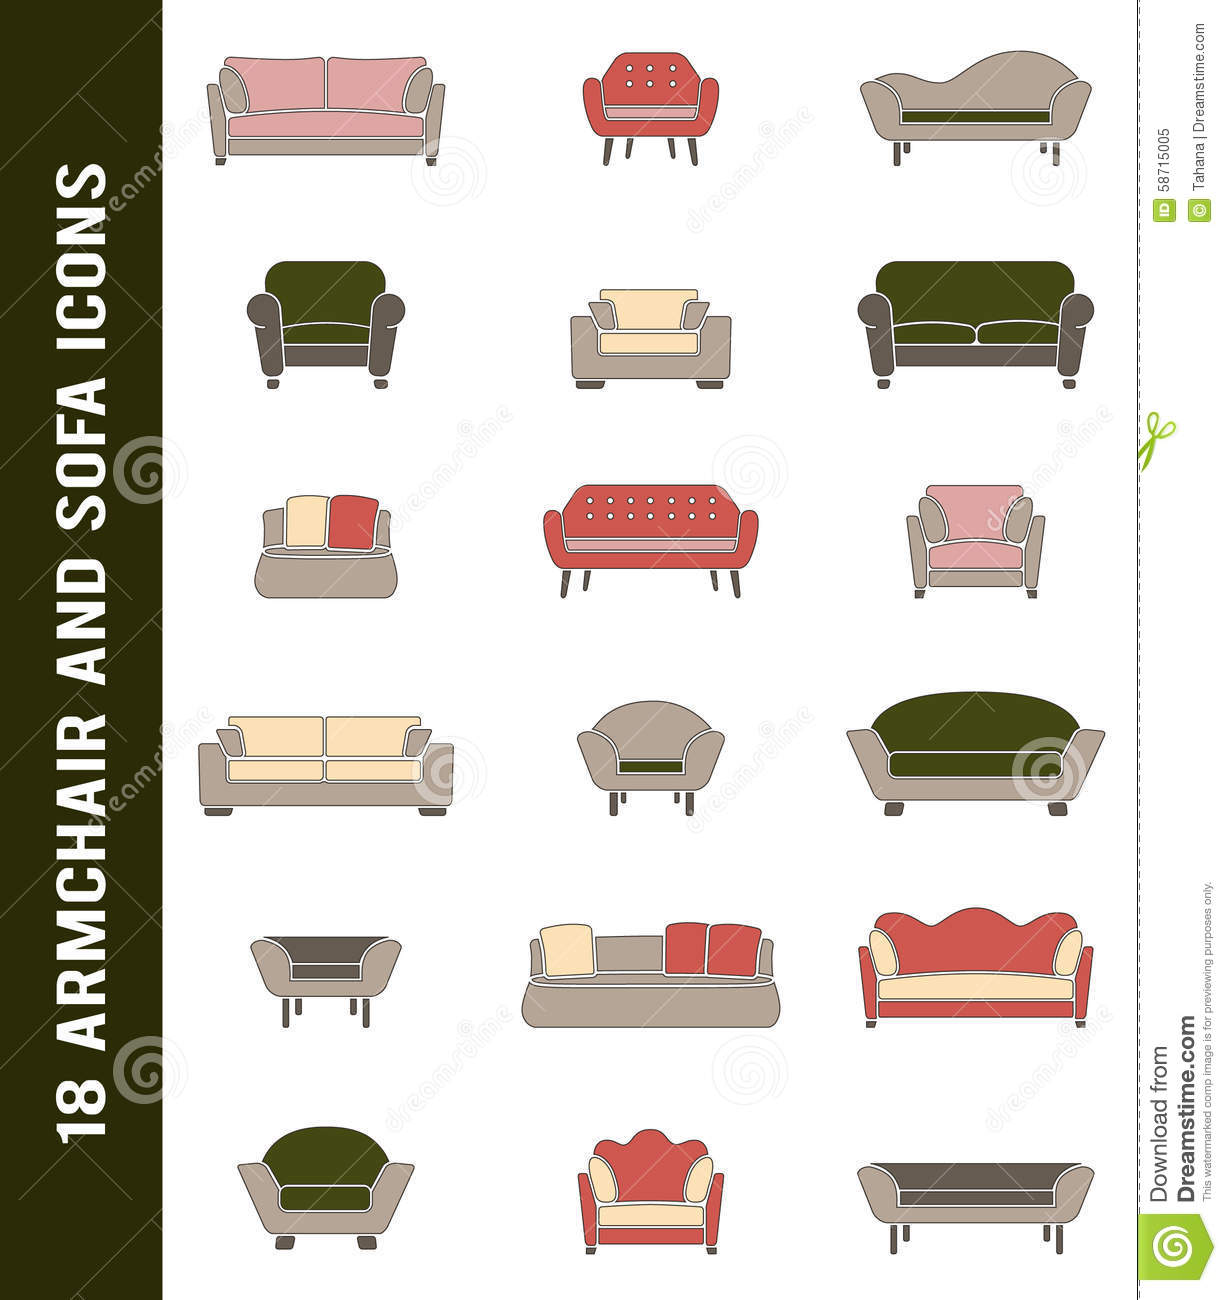 Sofa Shapes - Home Ideas